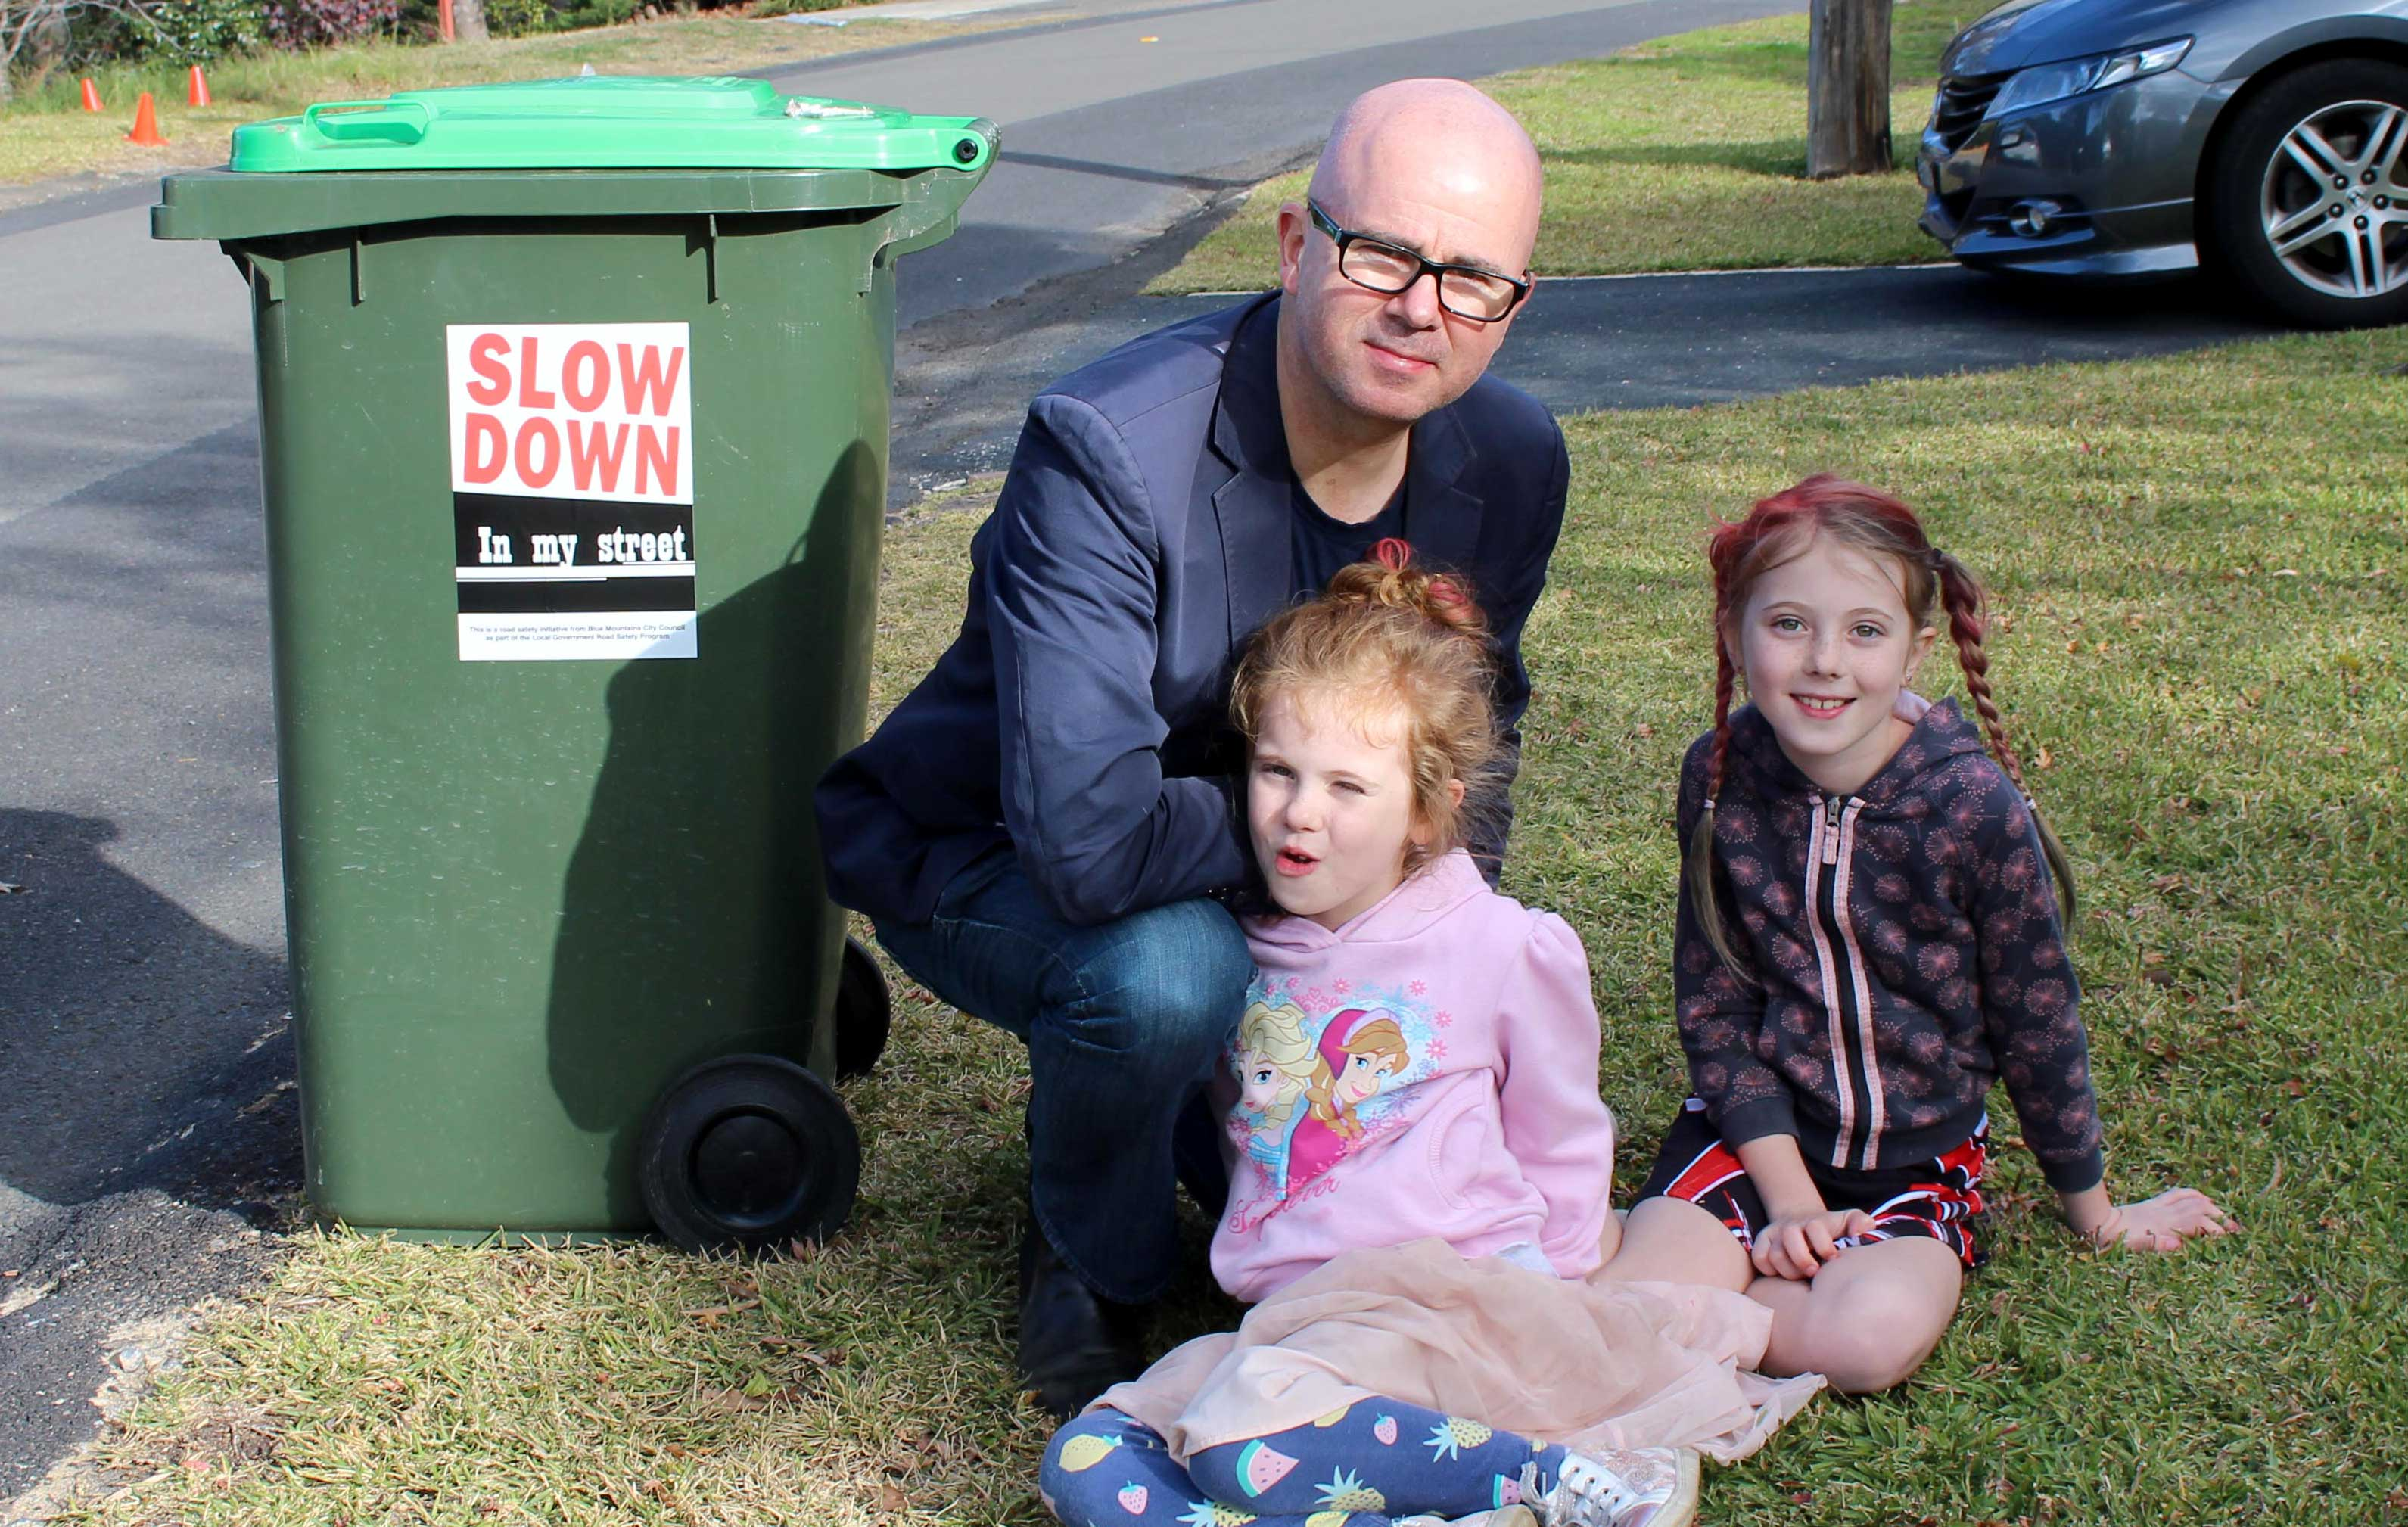 Keeping local roads safe - Slow Down In My Street | bmcc nsw